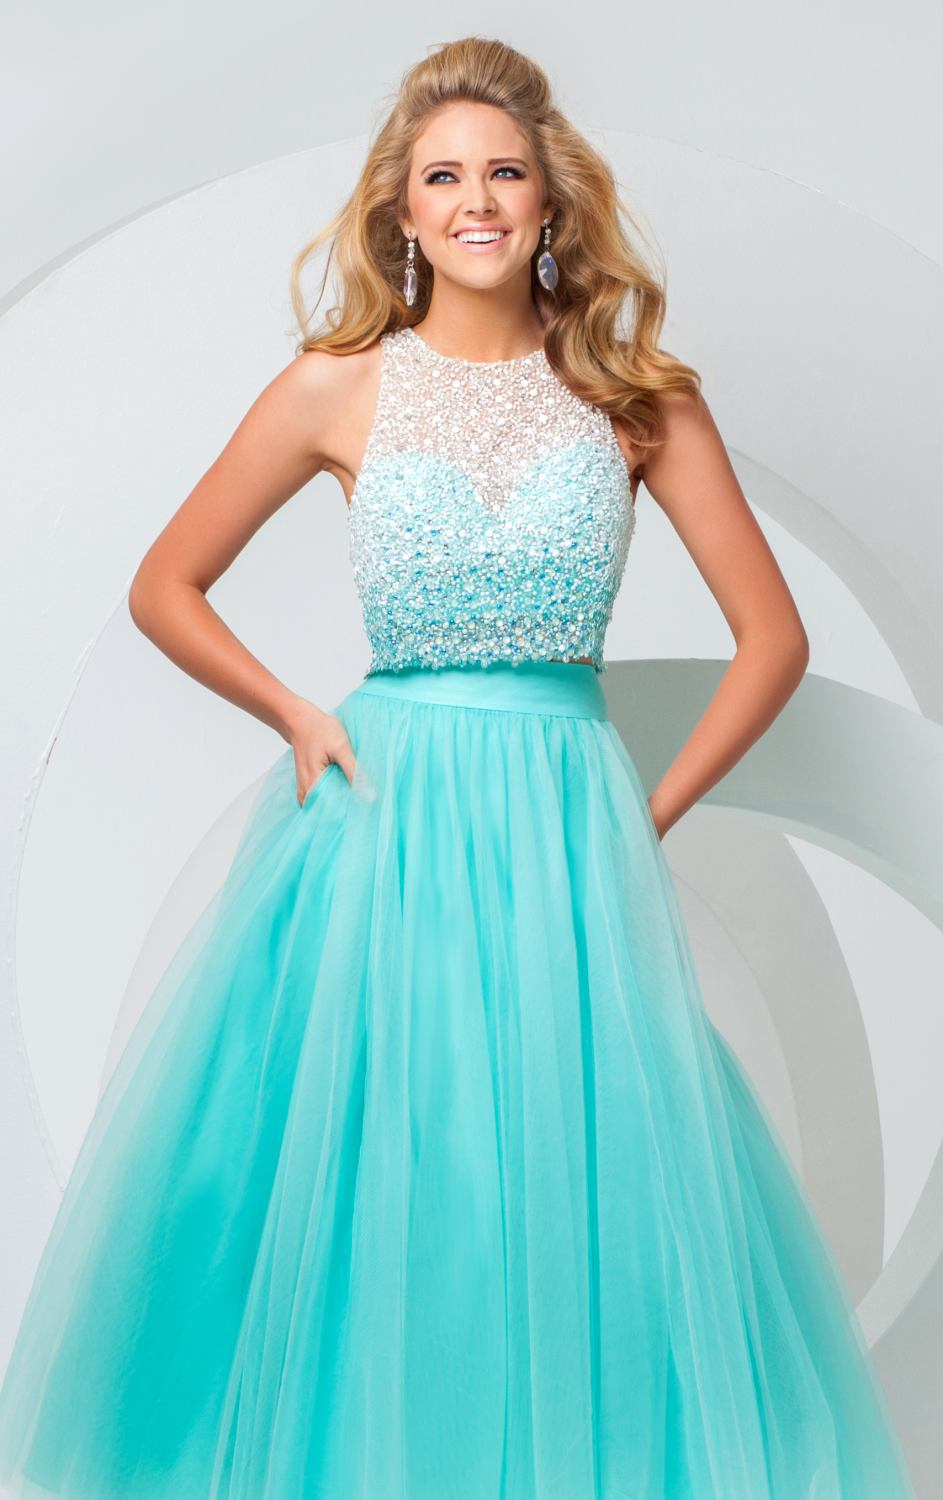 New Fashion Designer Two Piece Prom Dresses 2015 Tulle Top Beaded ...